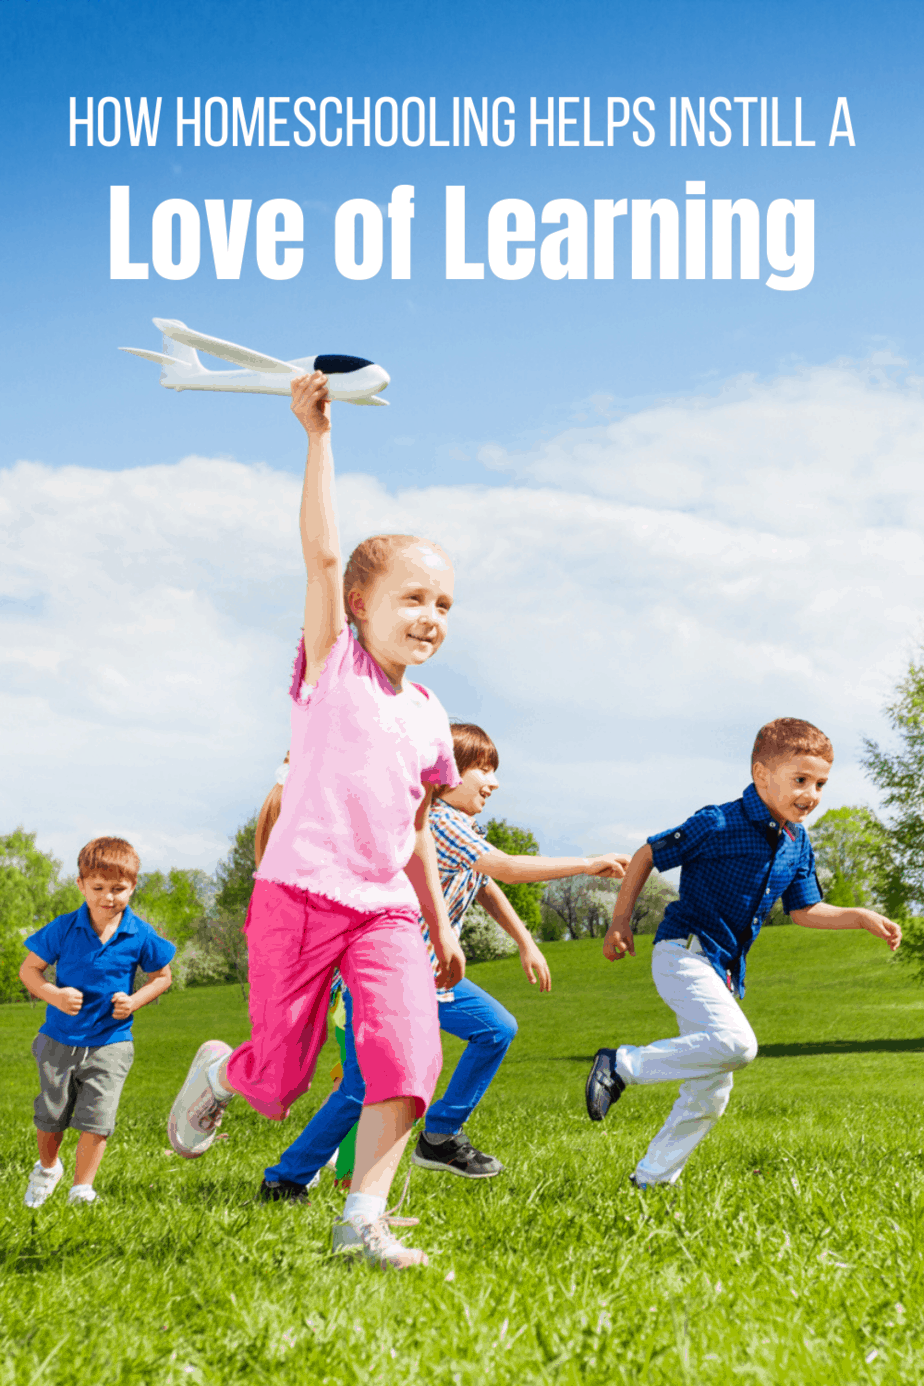 How Homeschooling Helps Instill a Love of Learning